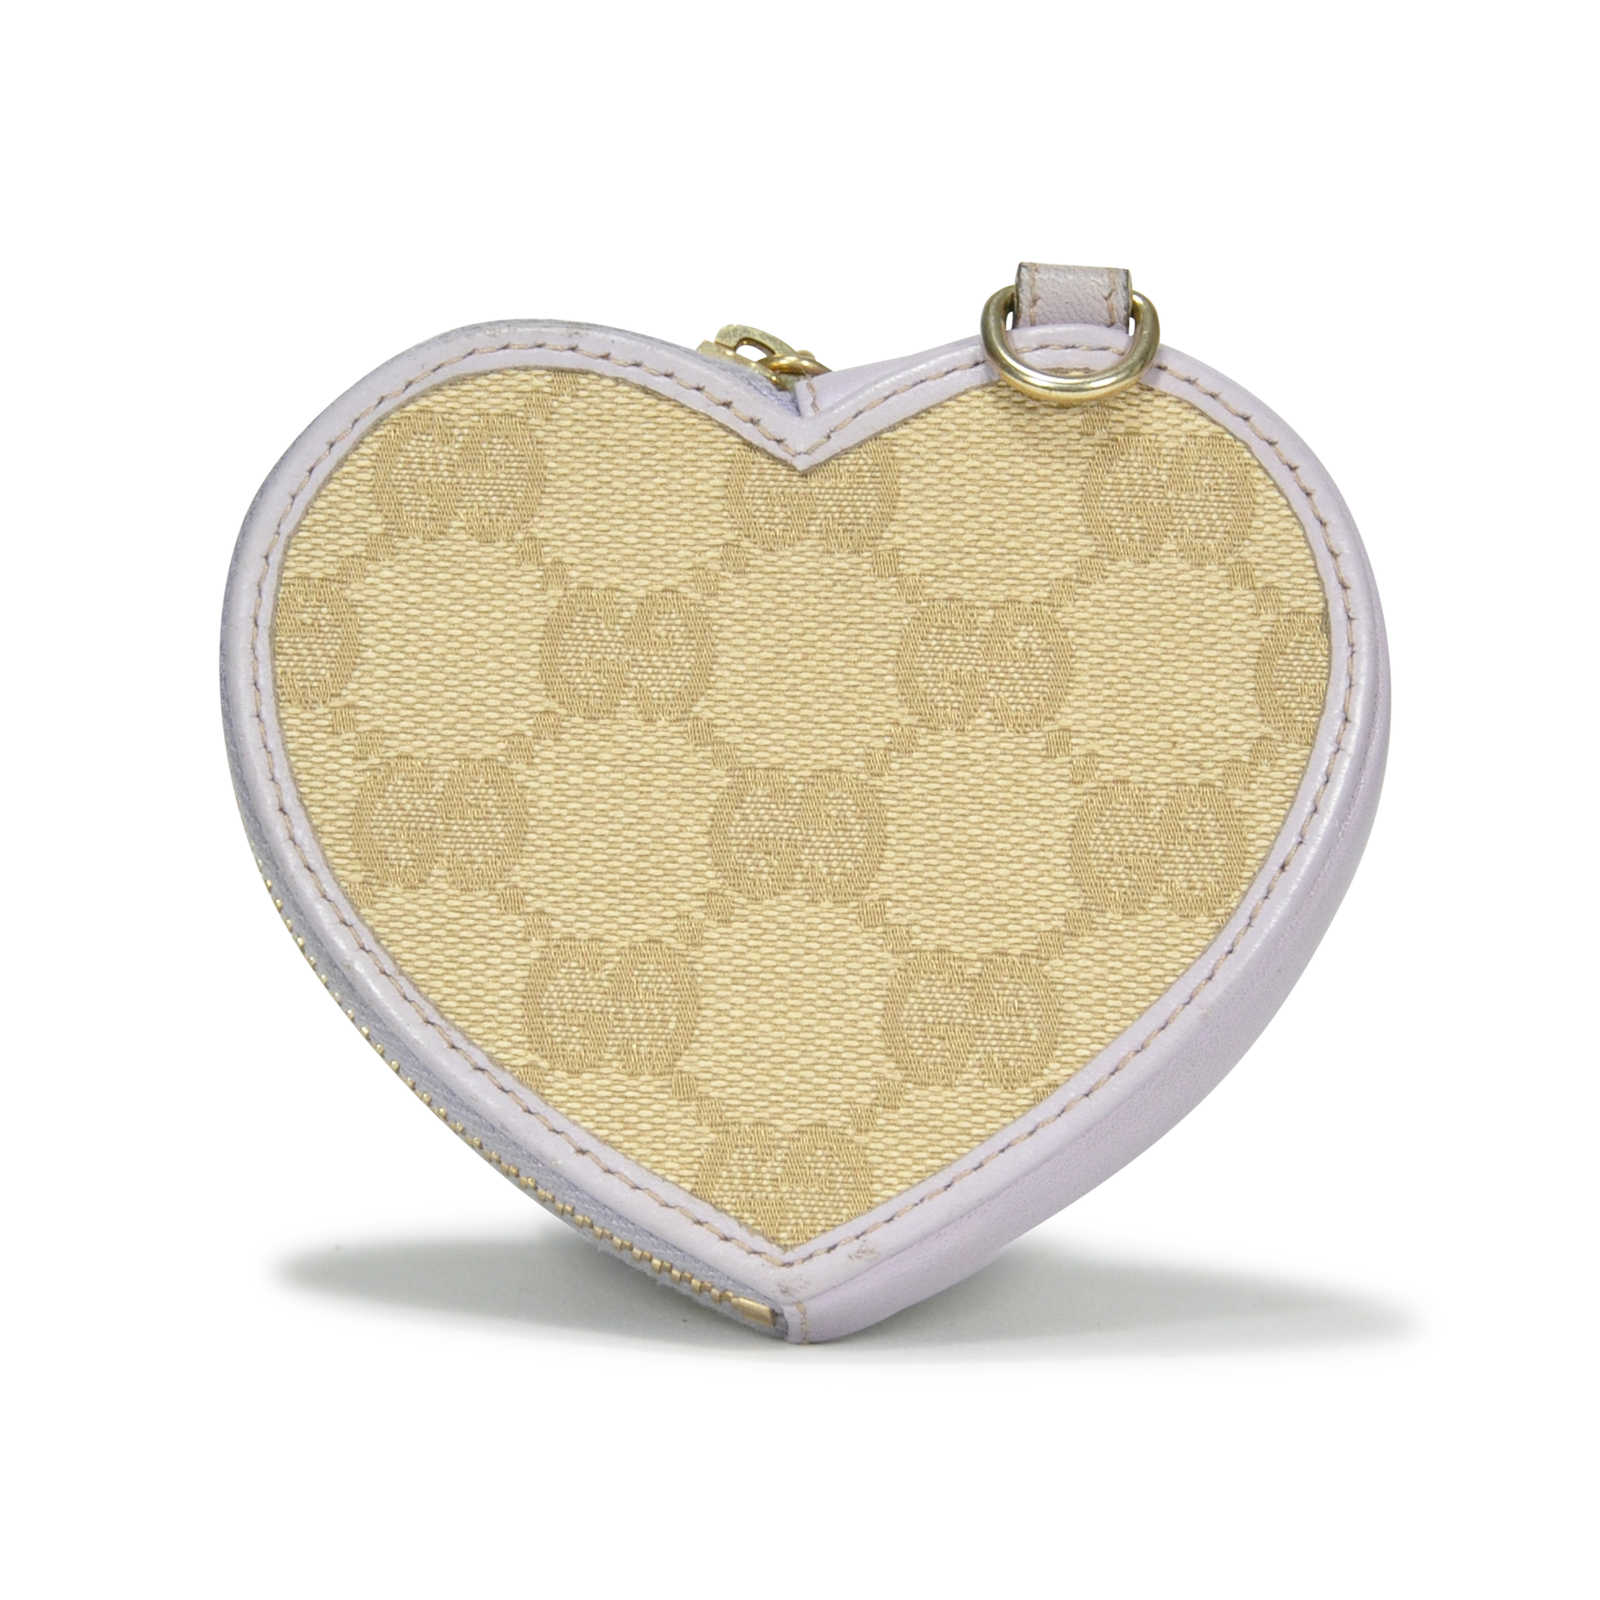 67b3ae84d84 Authentic Pre Owned Gucci Heart Monogram Coin Purse Pss 229 00005